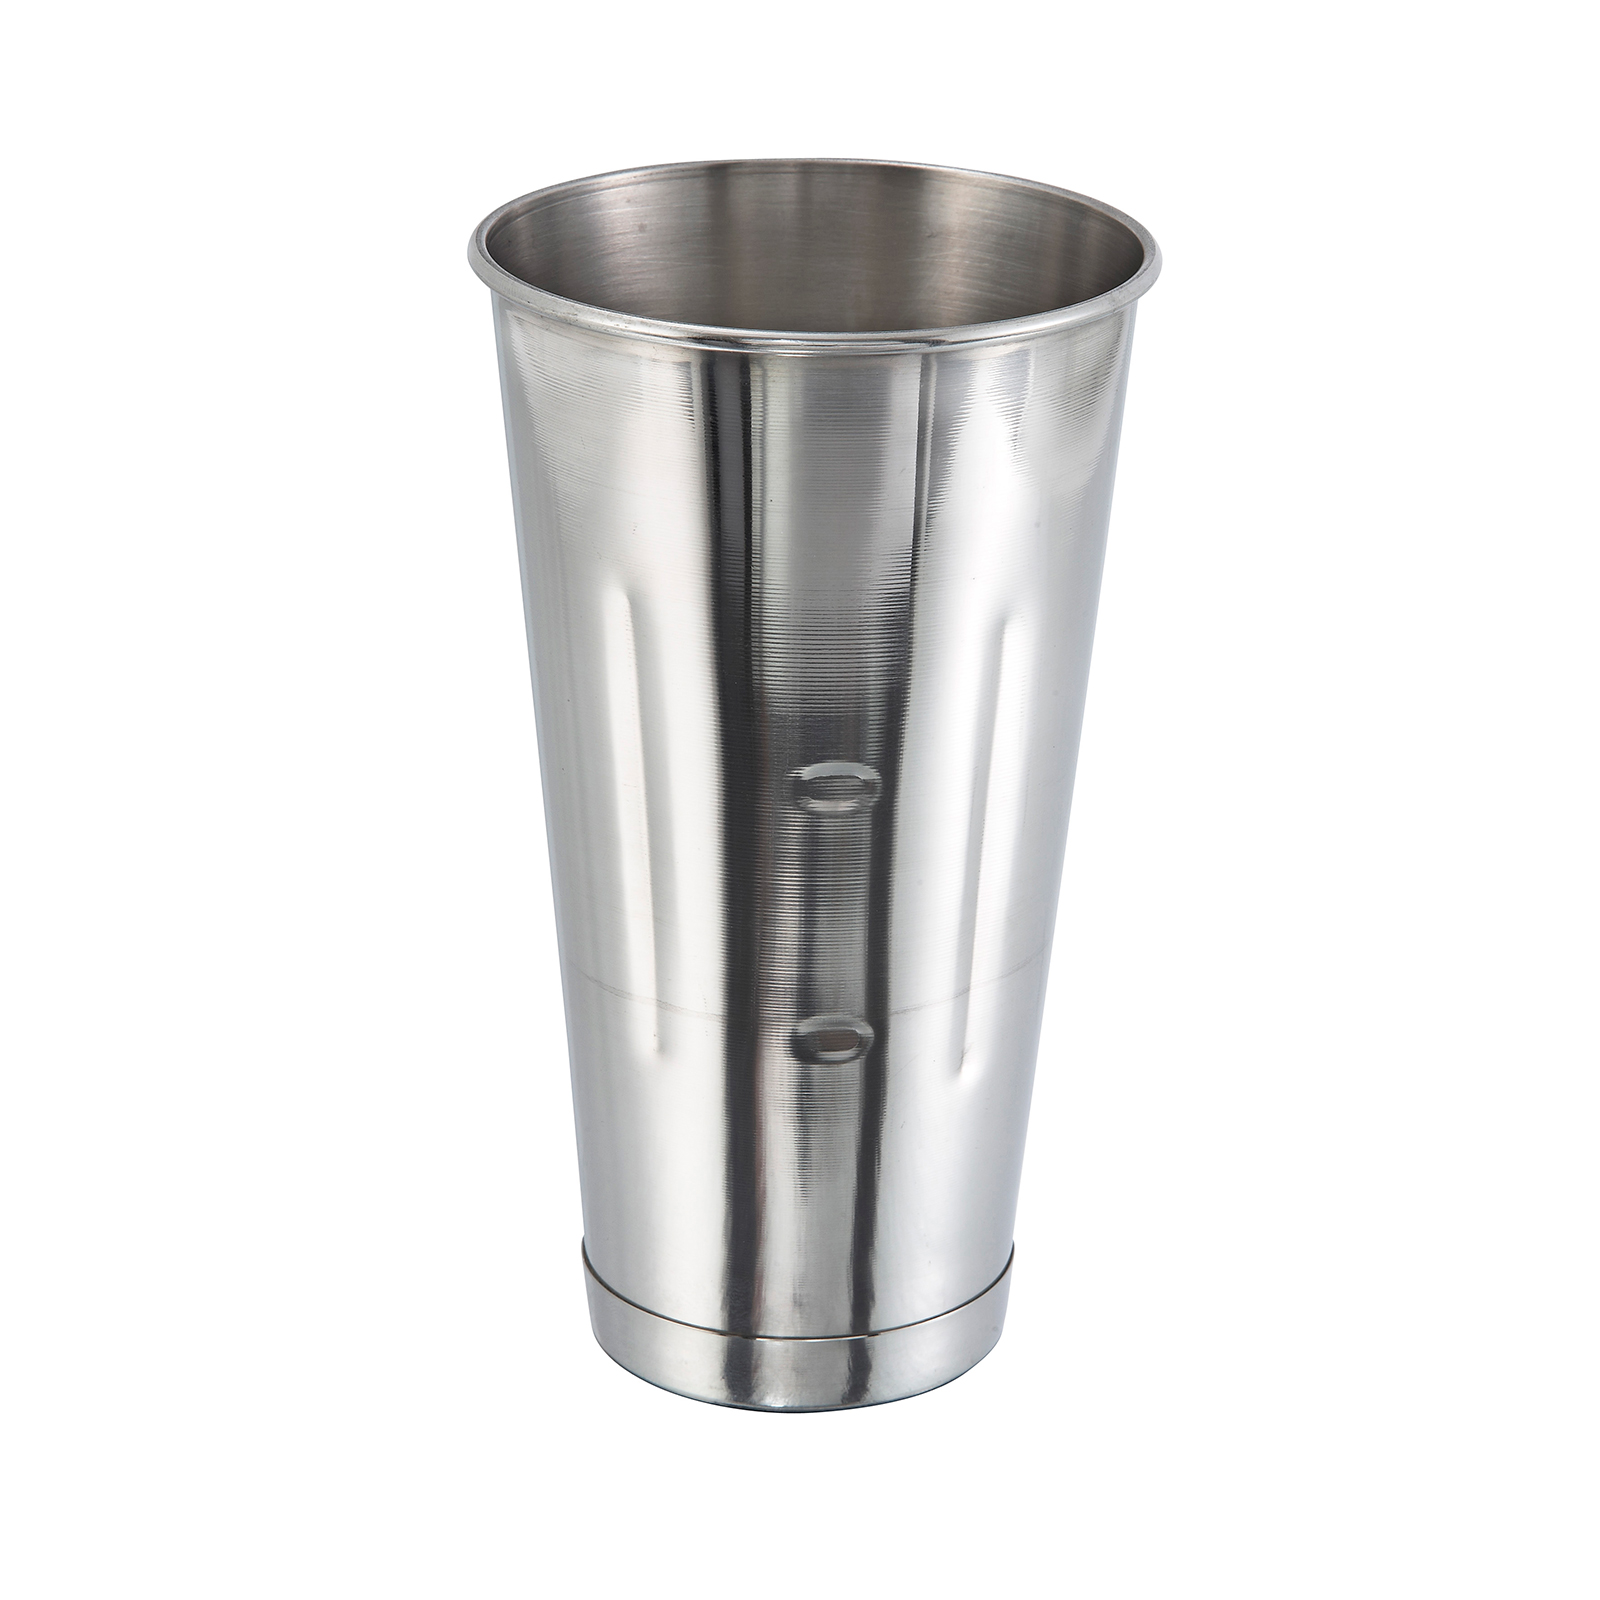 Winco MCP-30 malt cups